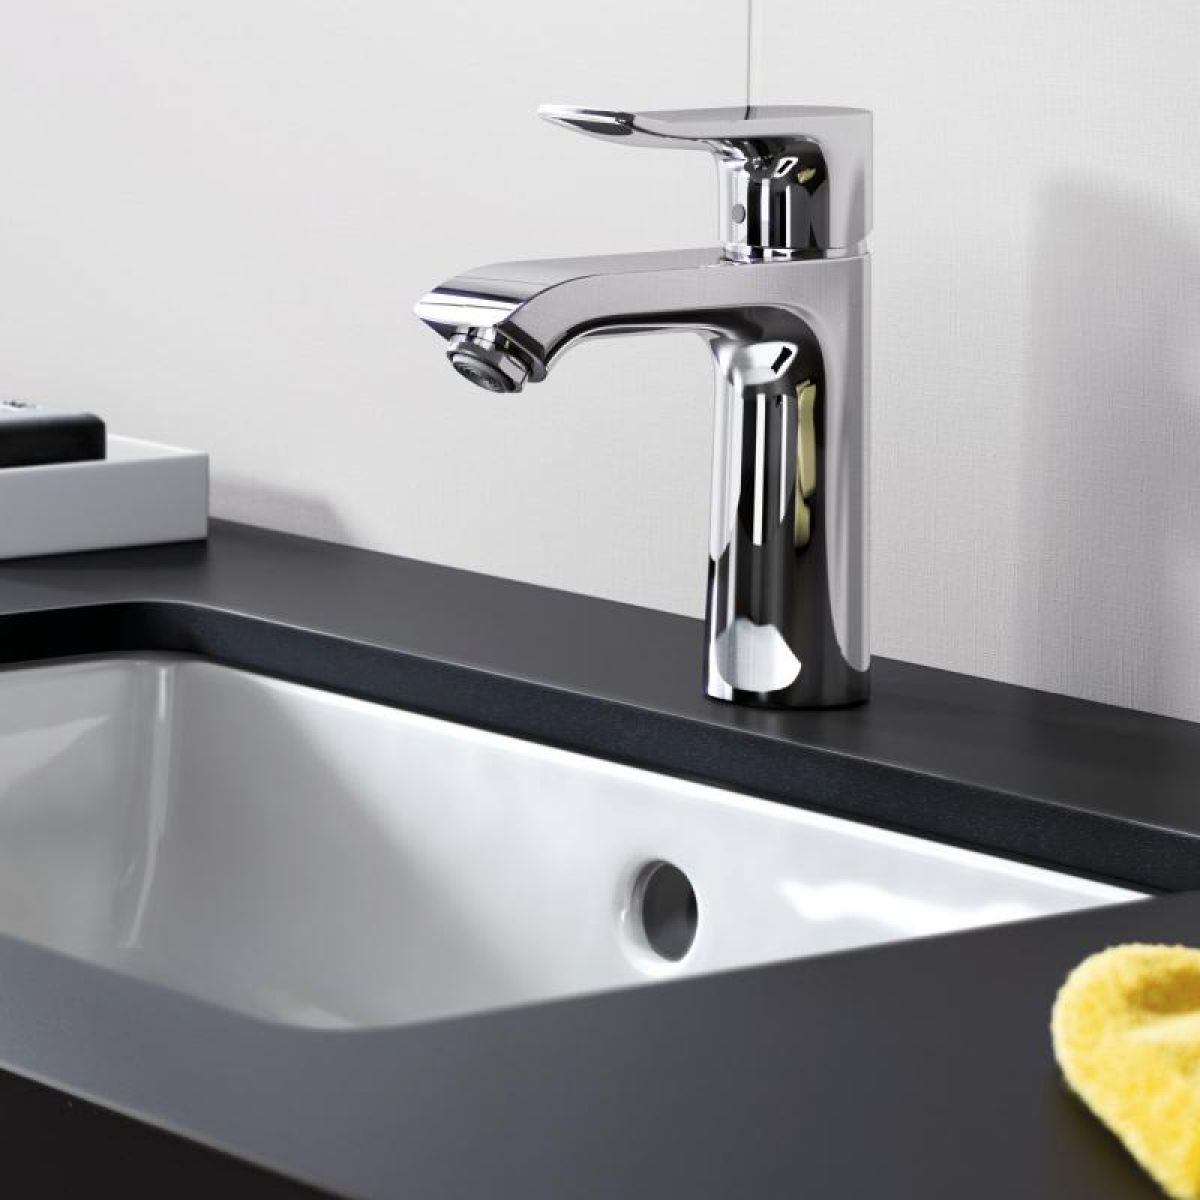 Hansgrohe Metris 110 Single Lever Basin Mixer Tap Uk